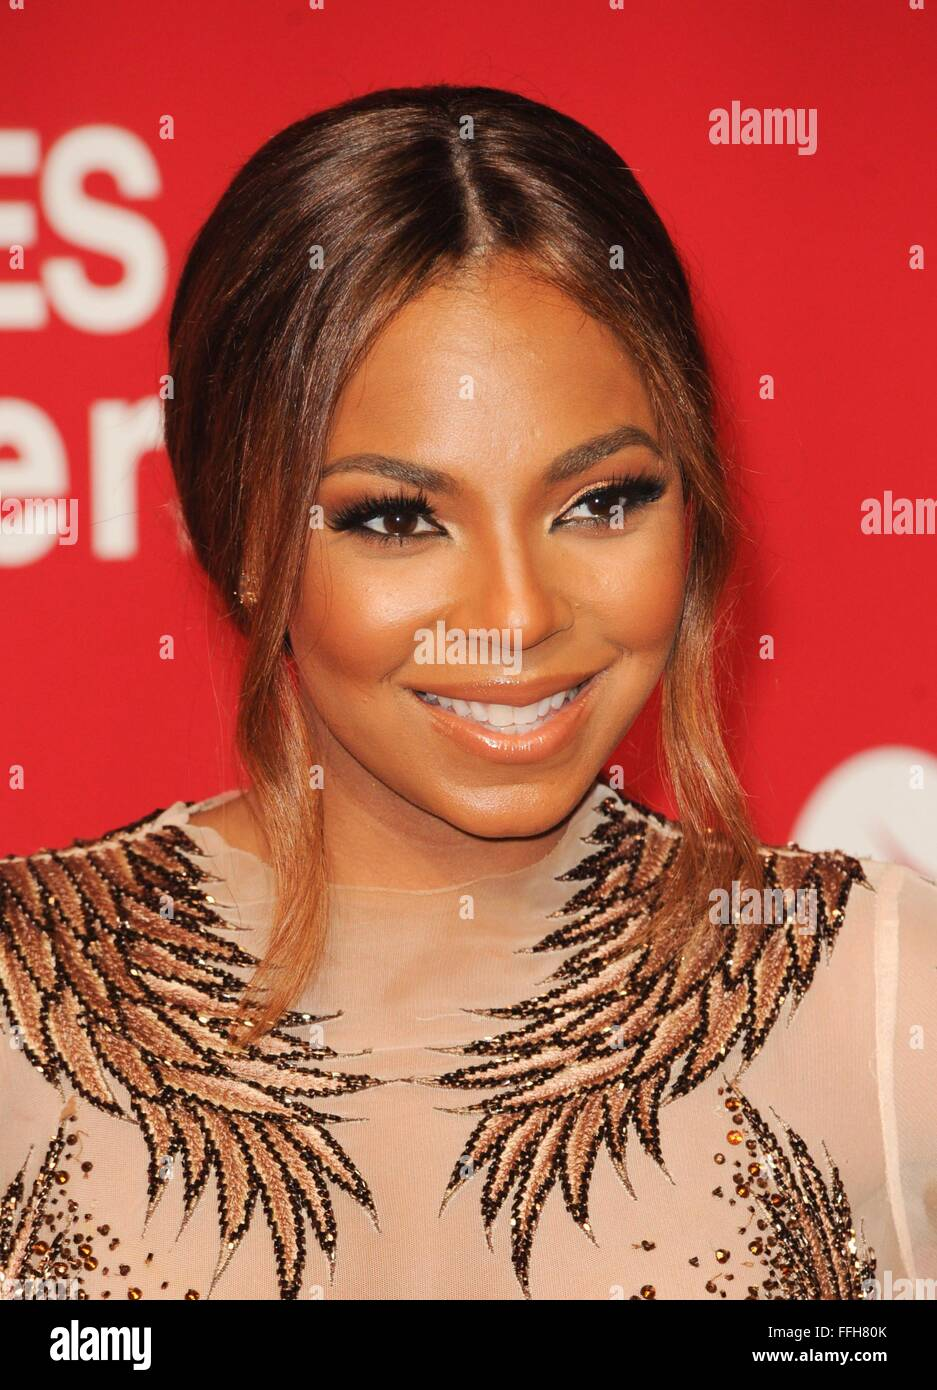 Los Angeles, CA, USA. 13th Feb, 2016. Ashanti at arrivals for MusiCares Person Of The Year Dinner, Los Angeles Convention Stock Photo